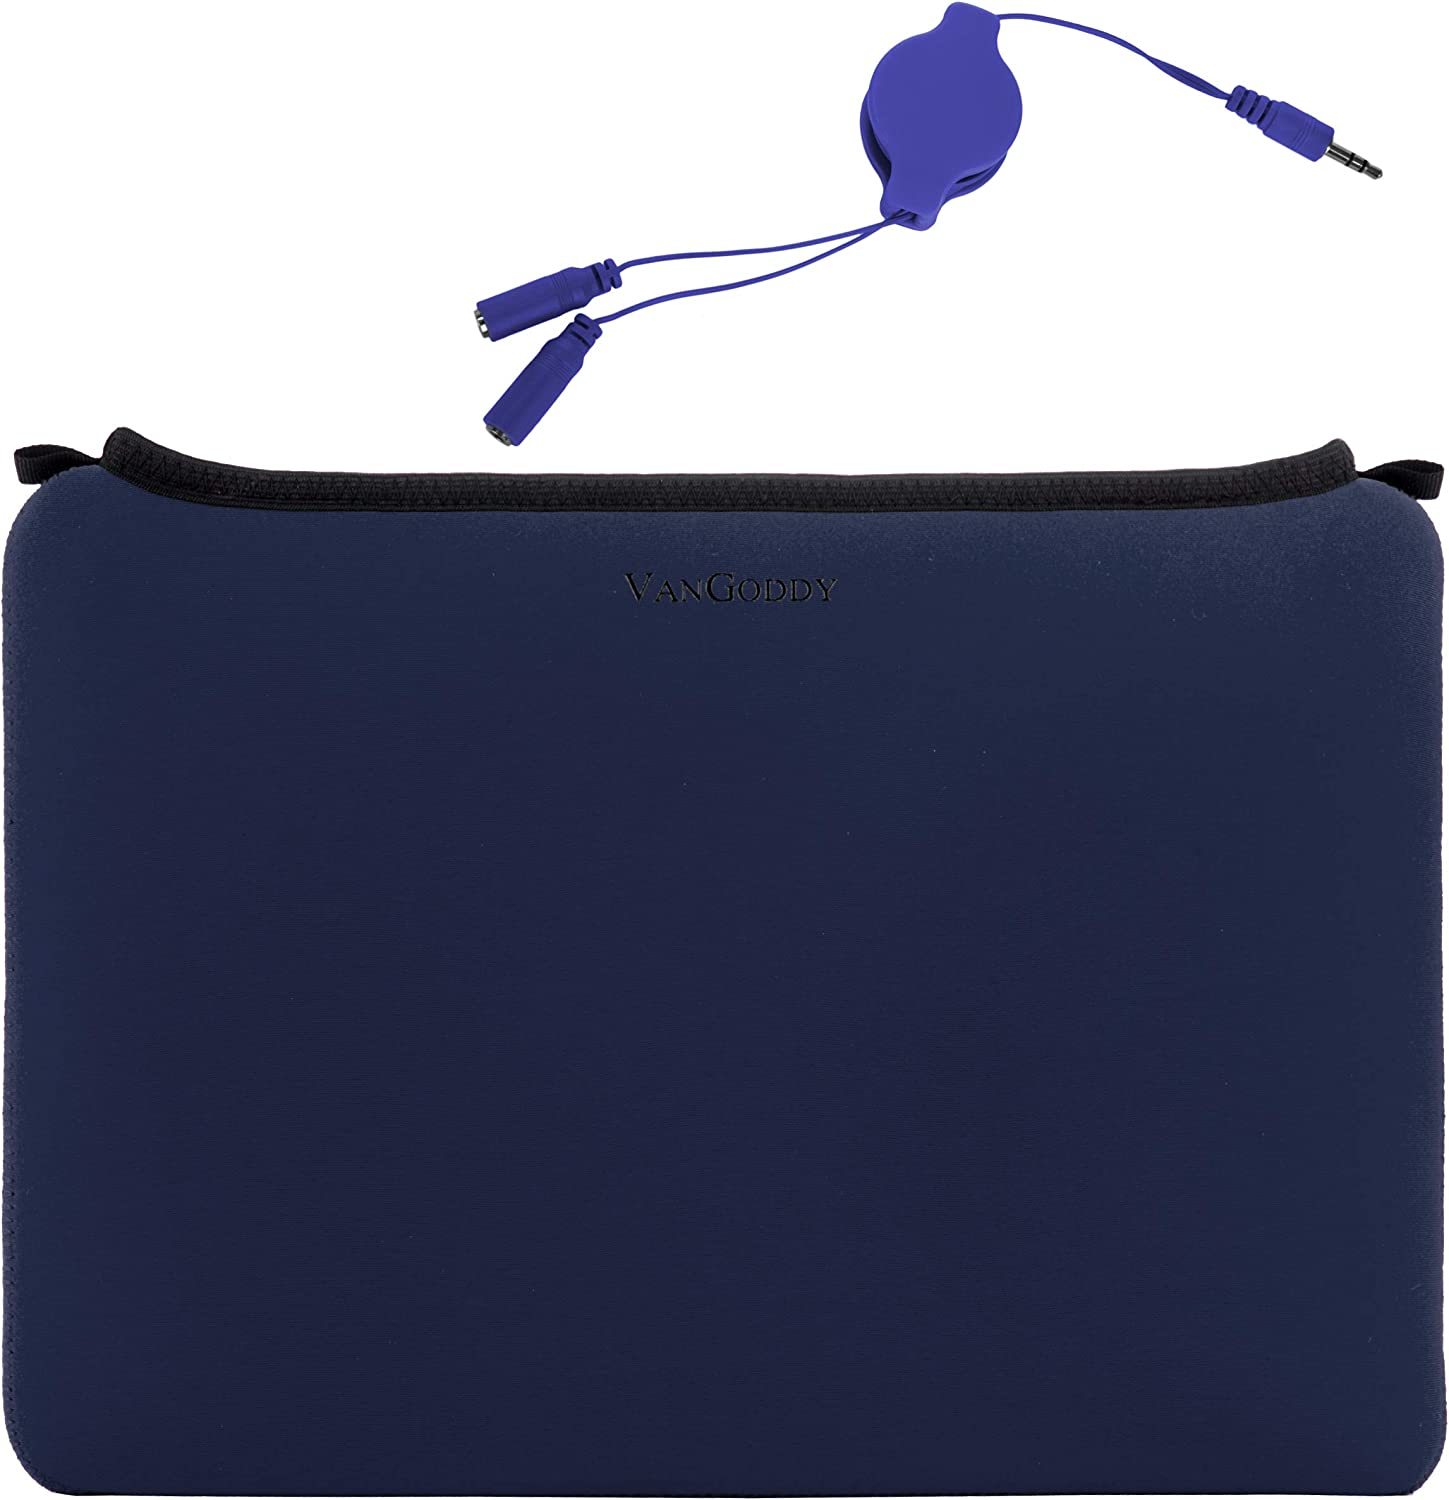 13.3 Inch Laptop Sleeve for Toshiba Portege A30 D1300ED, X30 D1352, X30 D1354, X30 D1356, X30 E1320, X30 E1322, X30 E1324, X30 E1326, X30 E1346, X30T E3142, X30T E3144 with Headphone Splitter Cable